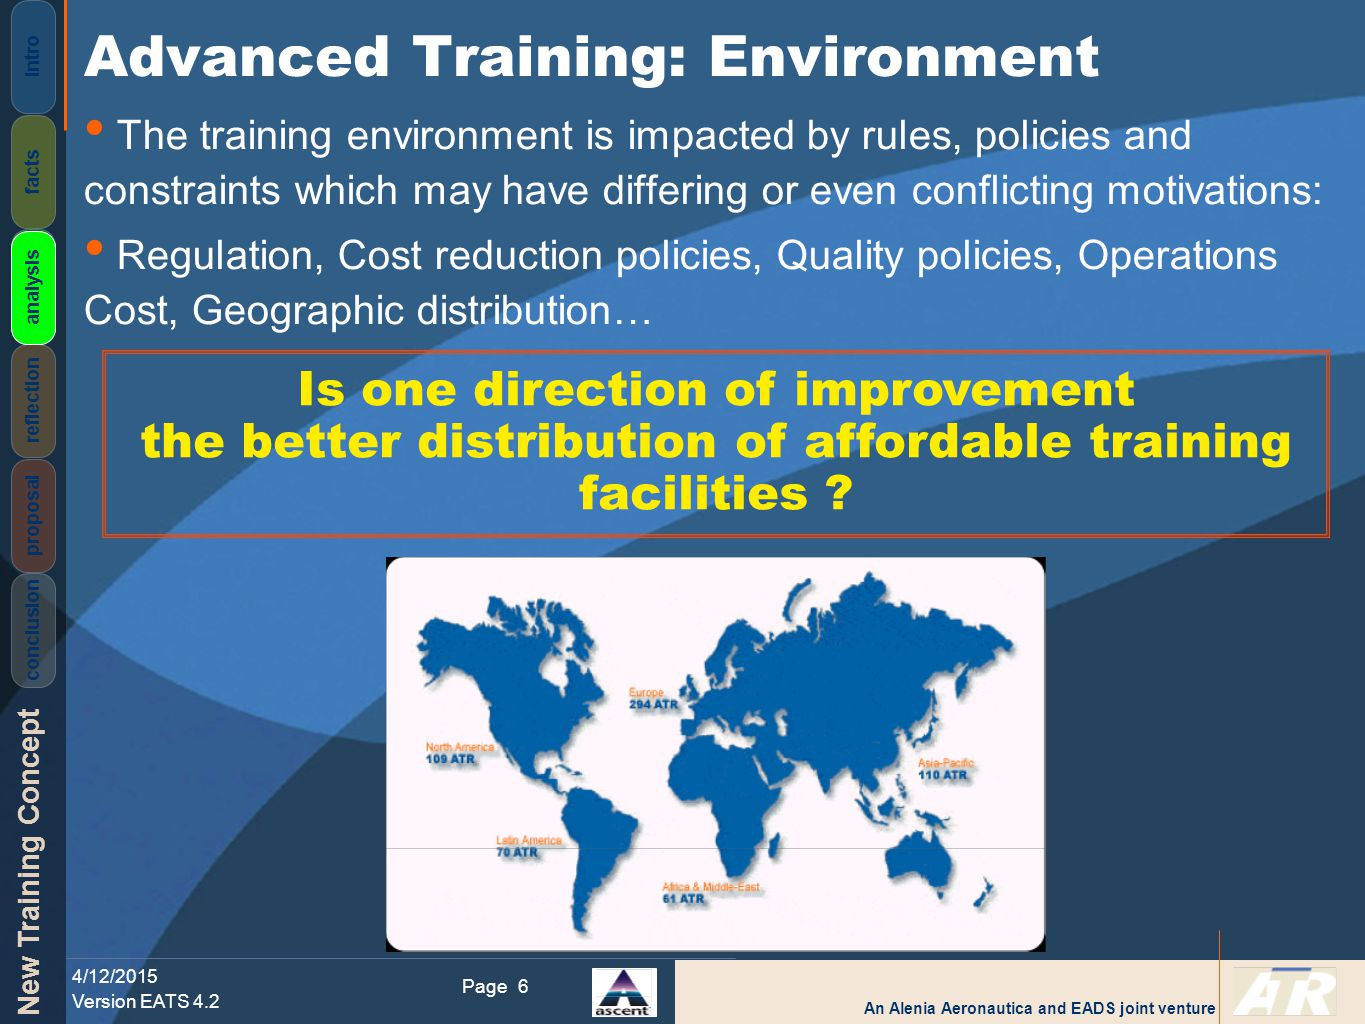 An Alenia Aeronautica and EADS joint venture New Training Concept 4/12/2015 Version EATS 4.2 Page Intro facts analysis reflection proposal conclusion 6 The training environment is impacted by rules, policies and constraints which may have differing or even conflicting motivations: Regulation, Cost reduction policies, Quality policies, Operations Cost, Geographic distribution… Advanced Training: Environment analysis Is one direction of improvement the better distribution of affordable training facilities